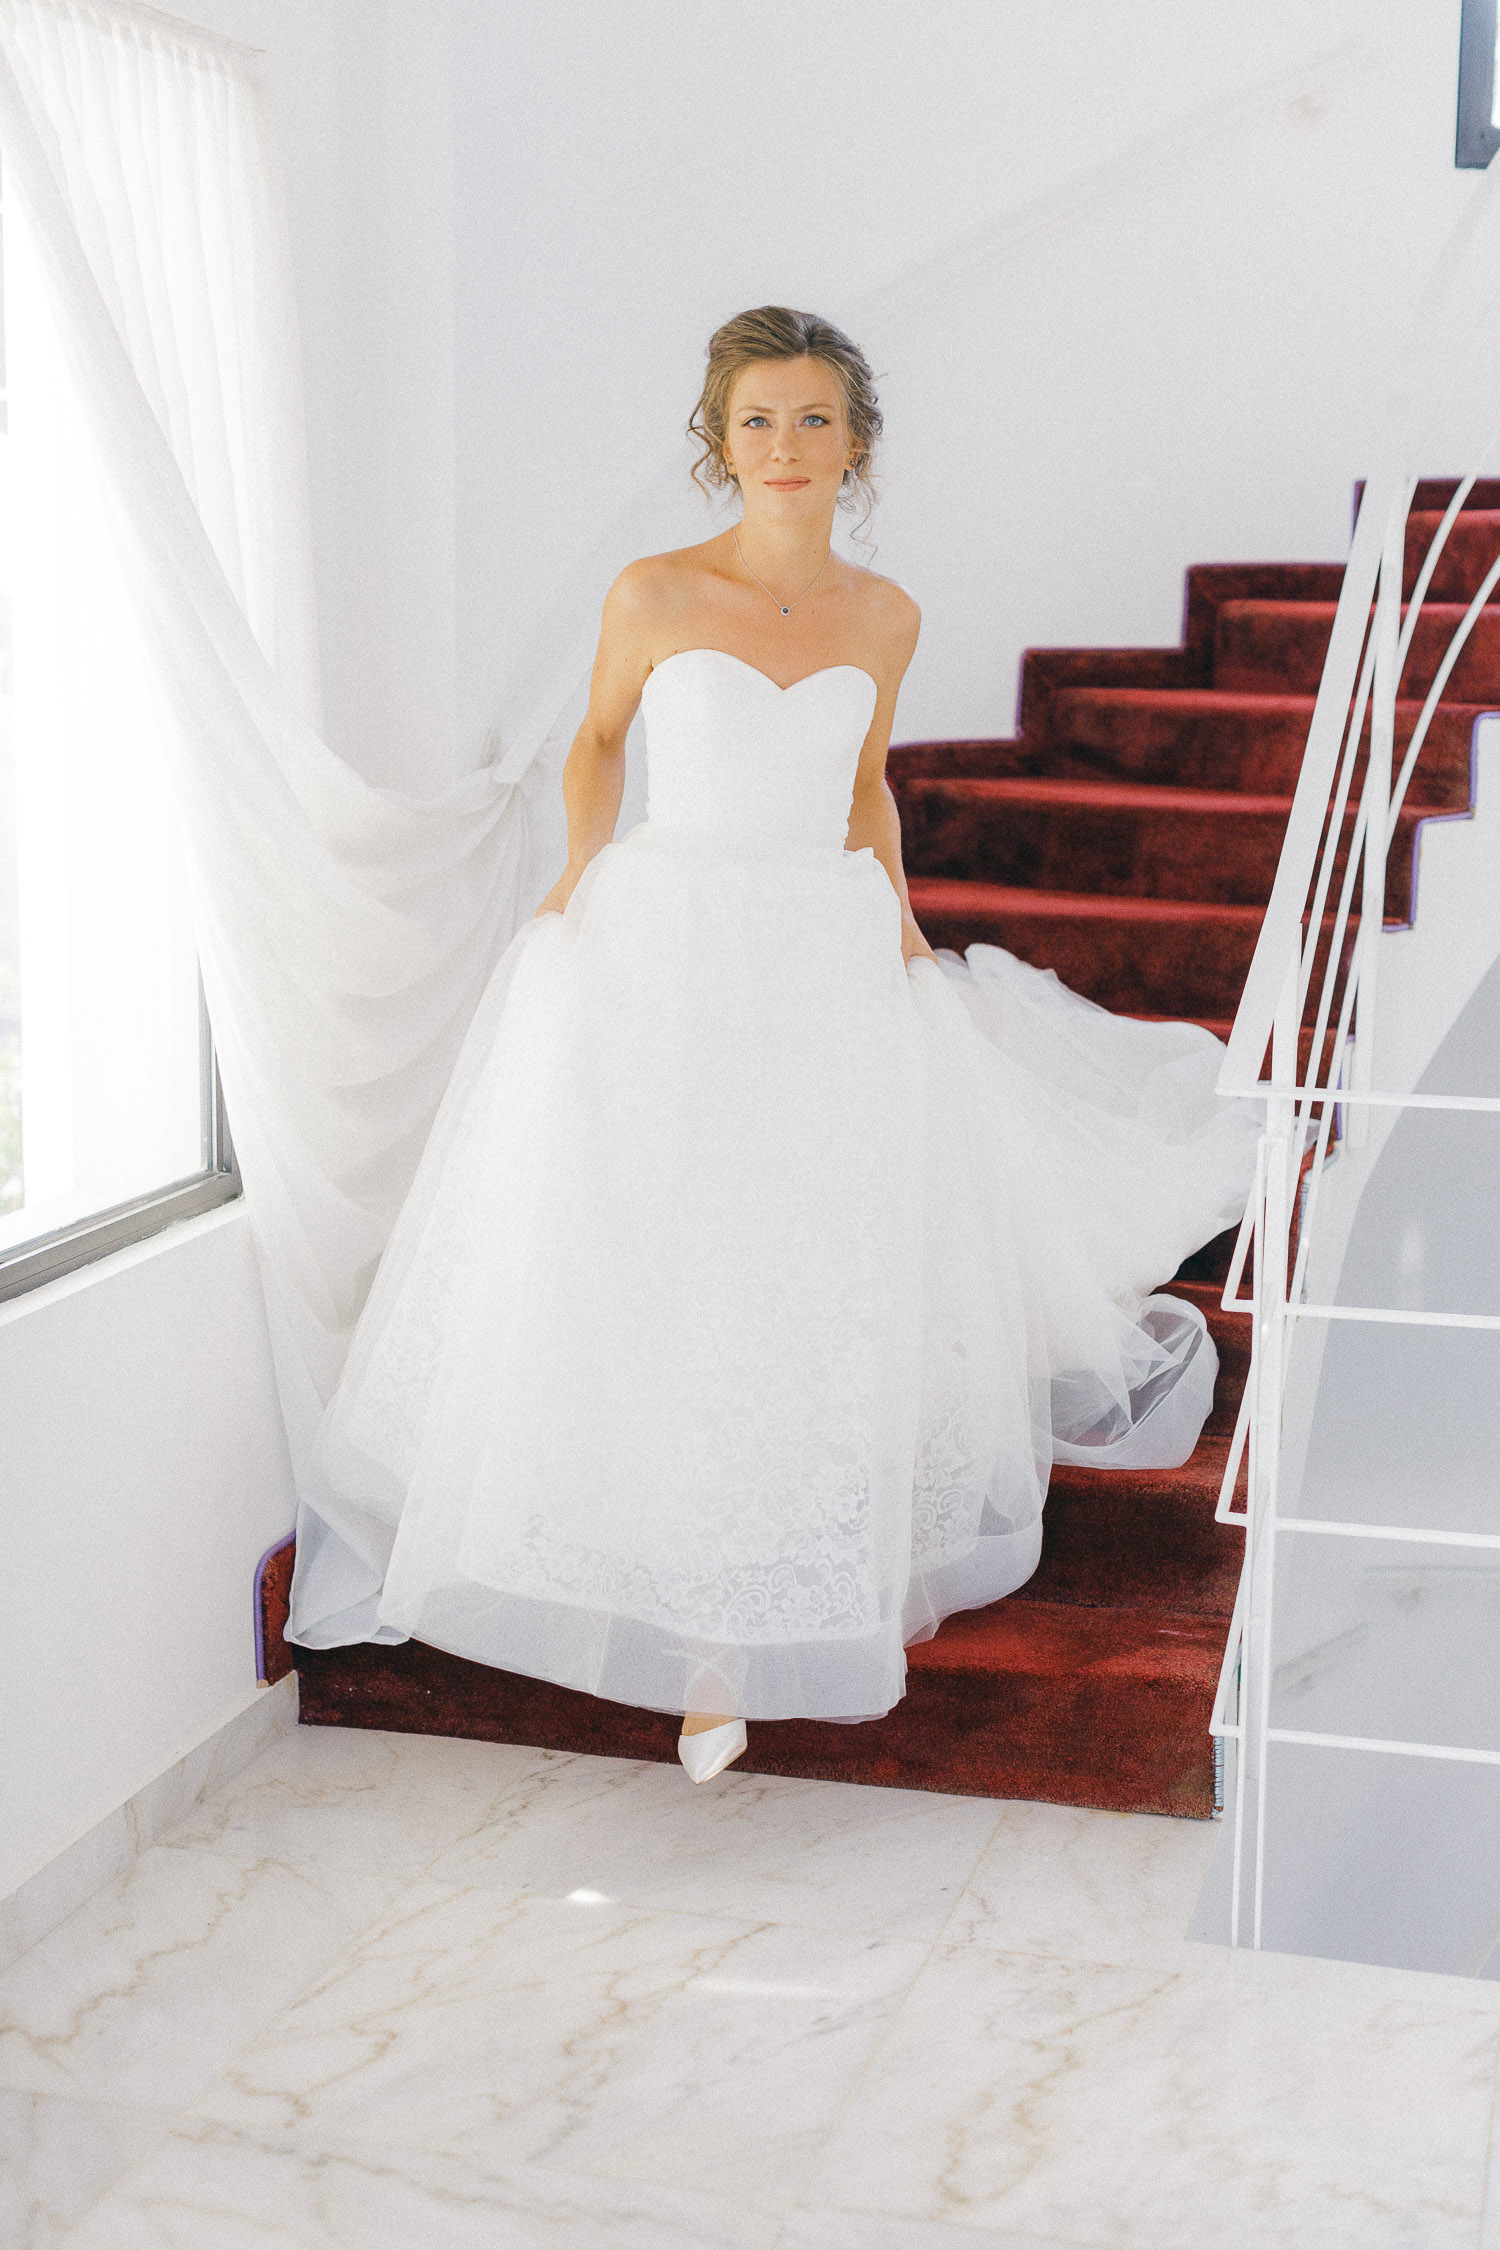 Bride going down the wedding venue stairs at Old World micro wedding in Corfu Island